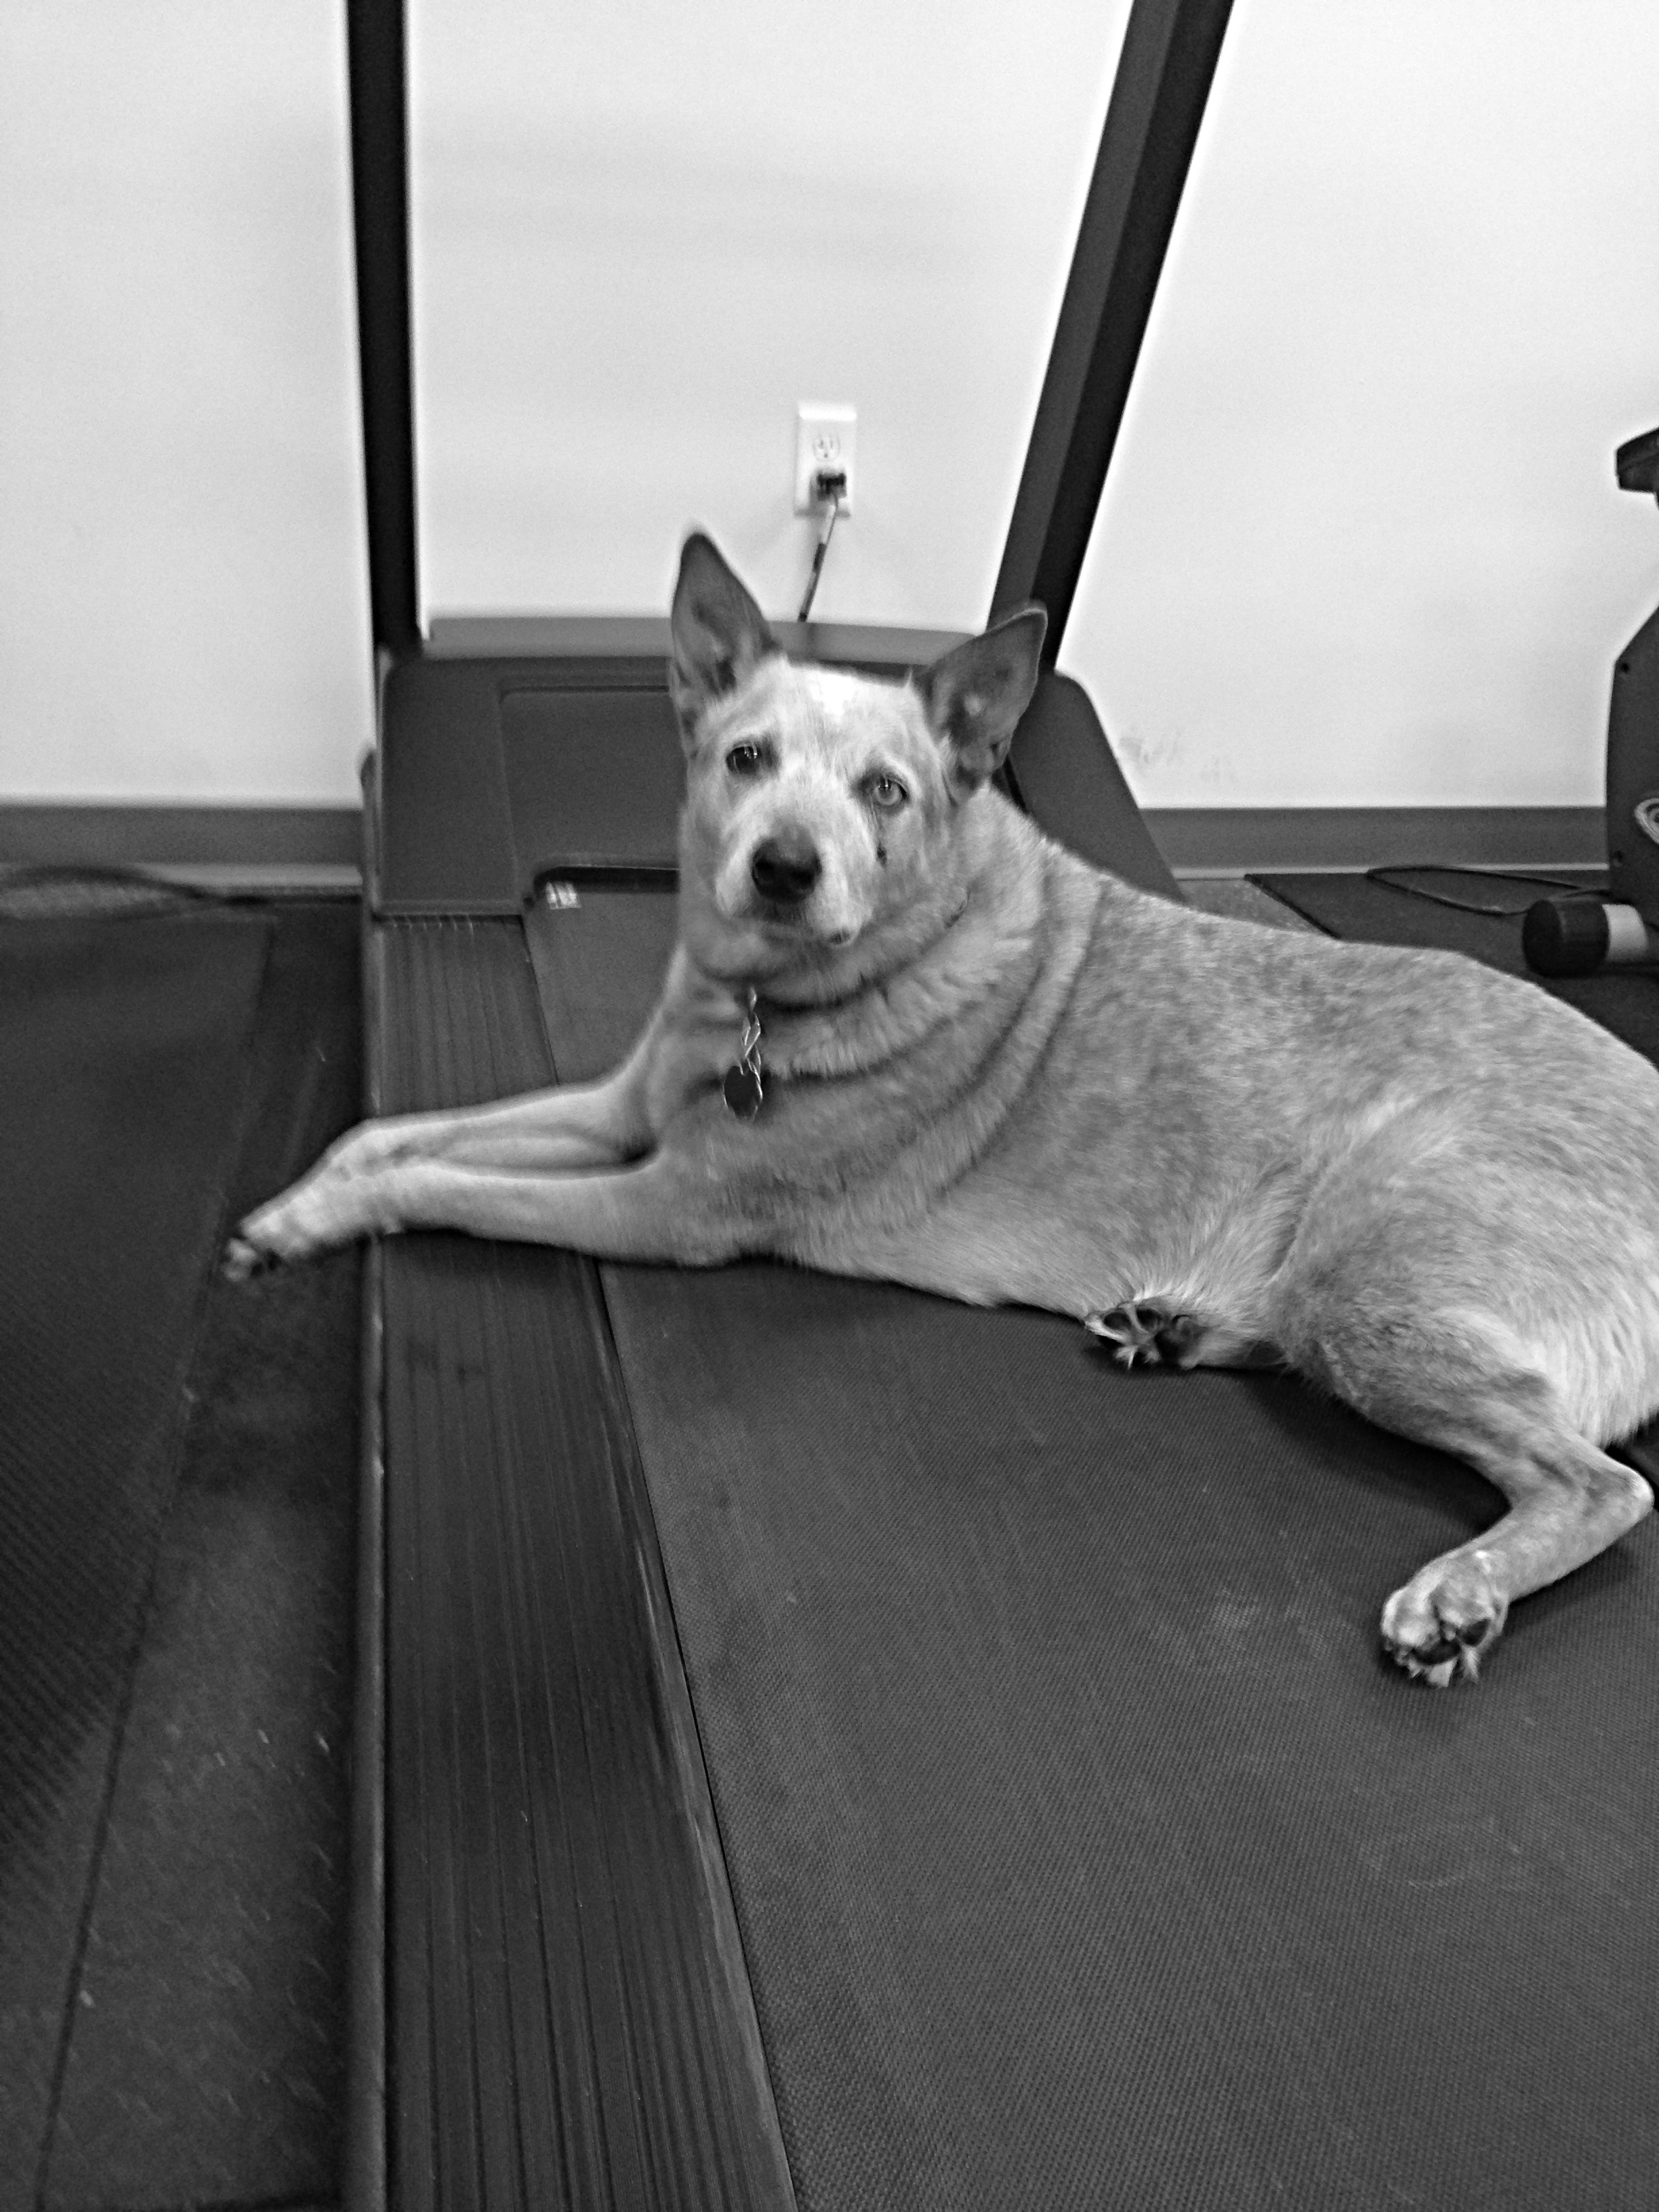 Pickles showing off our treadmill